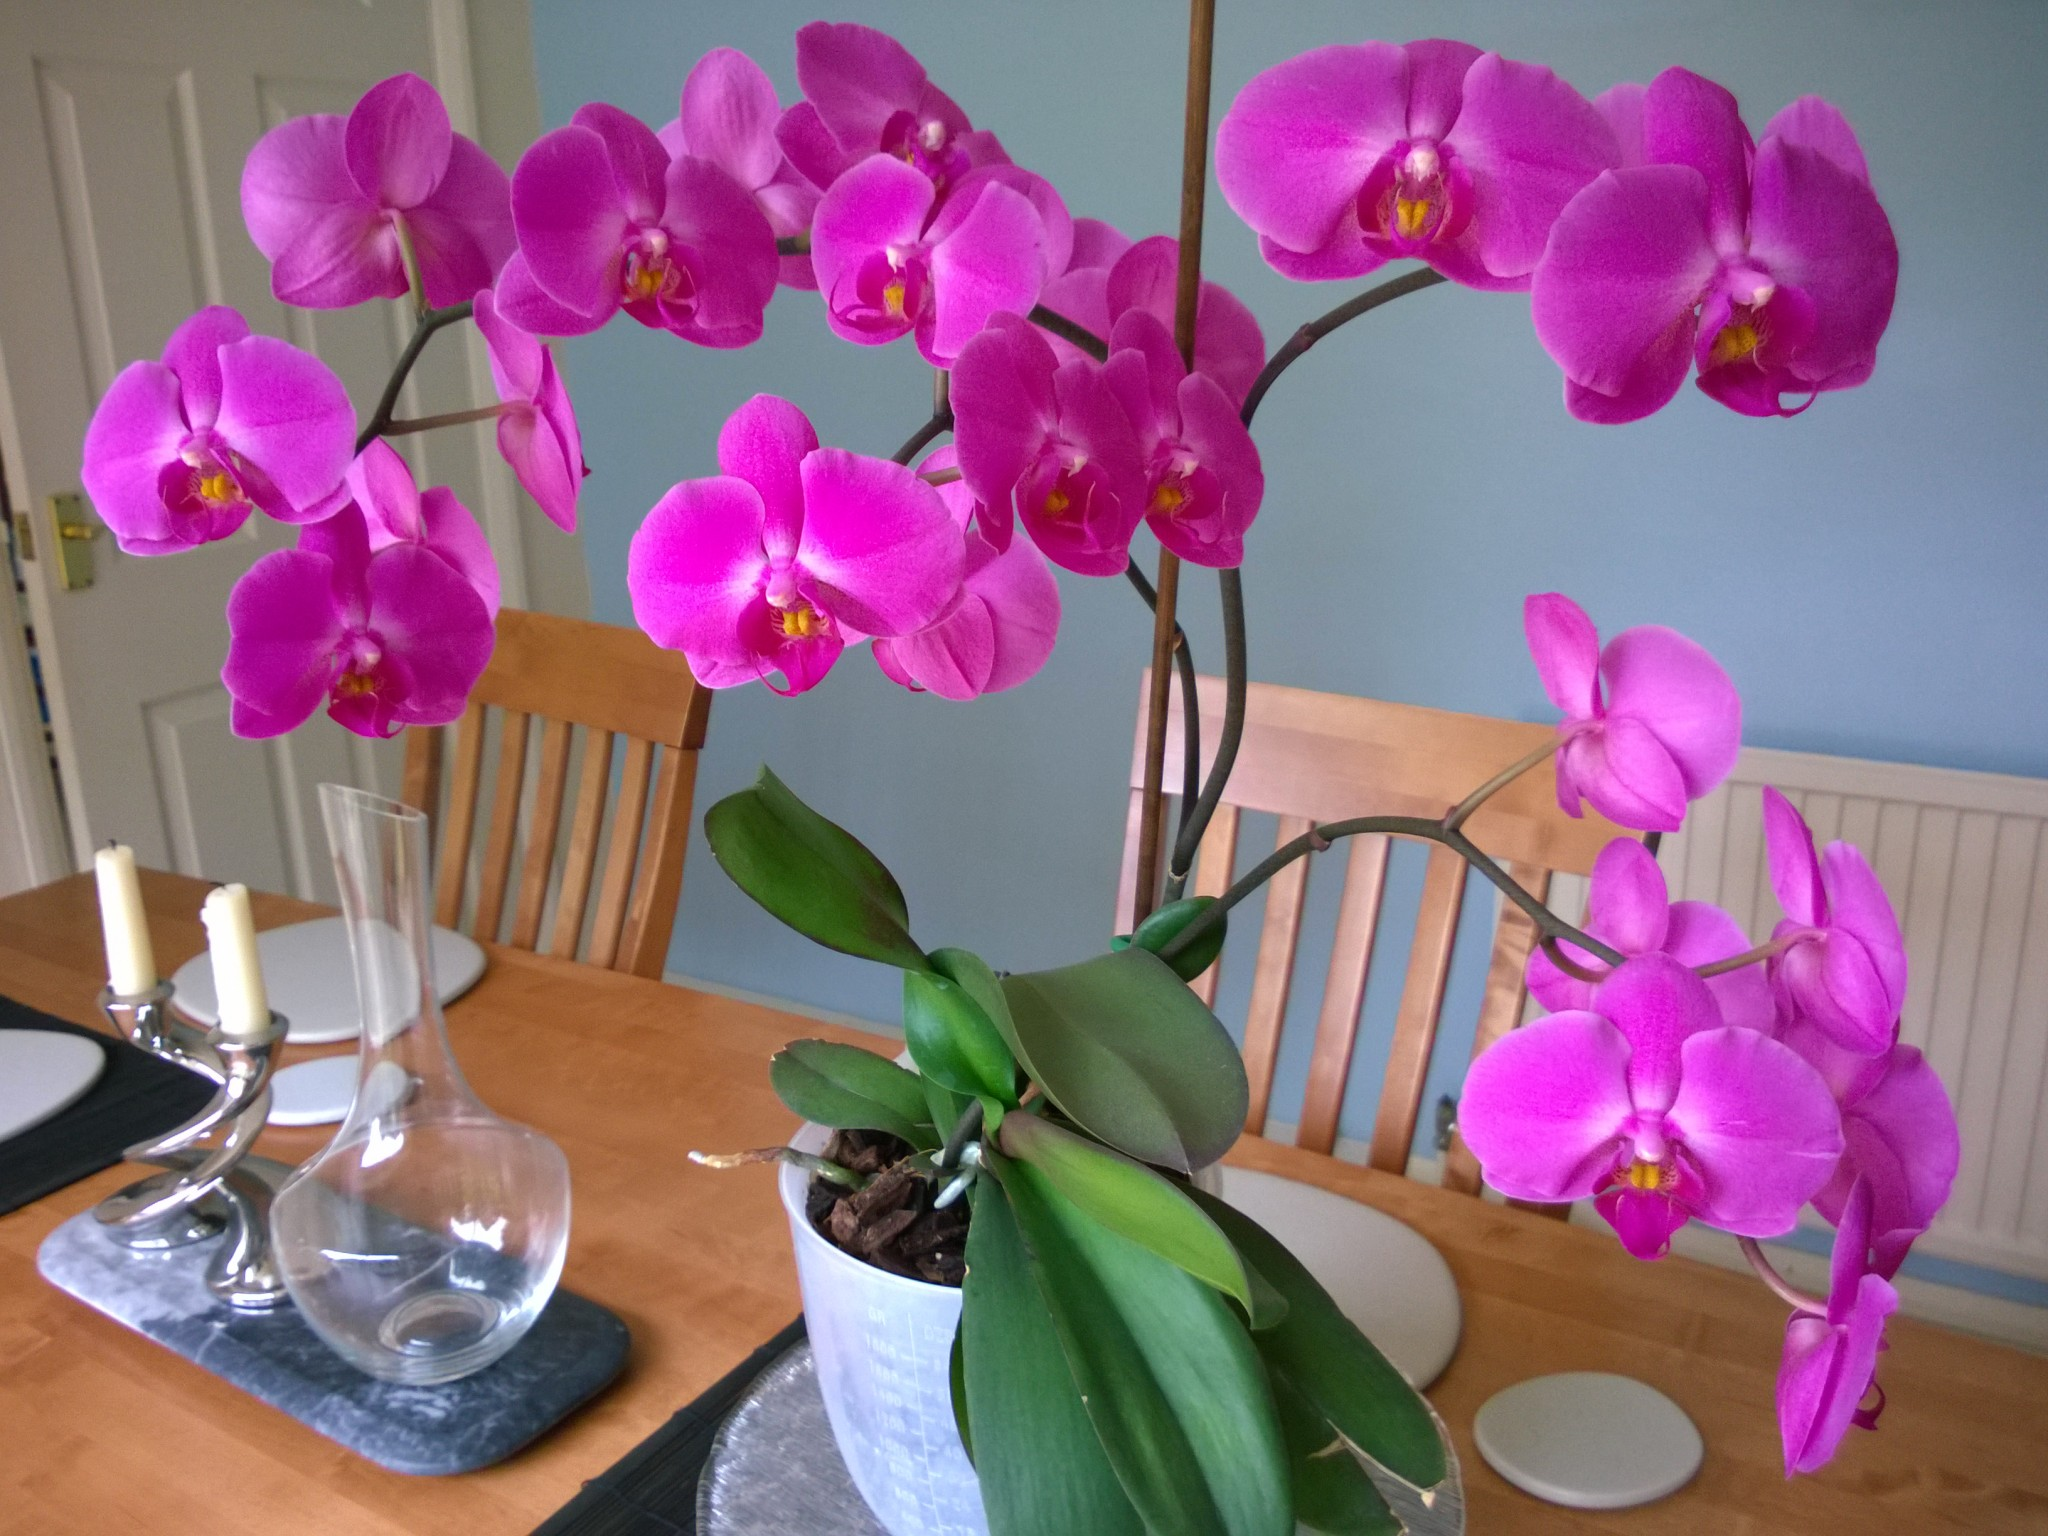 Orchid with four flower spikes